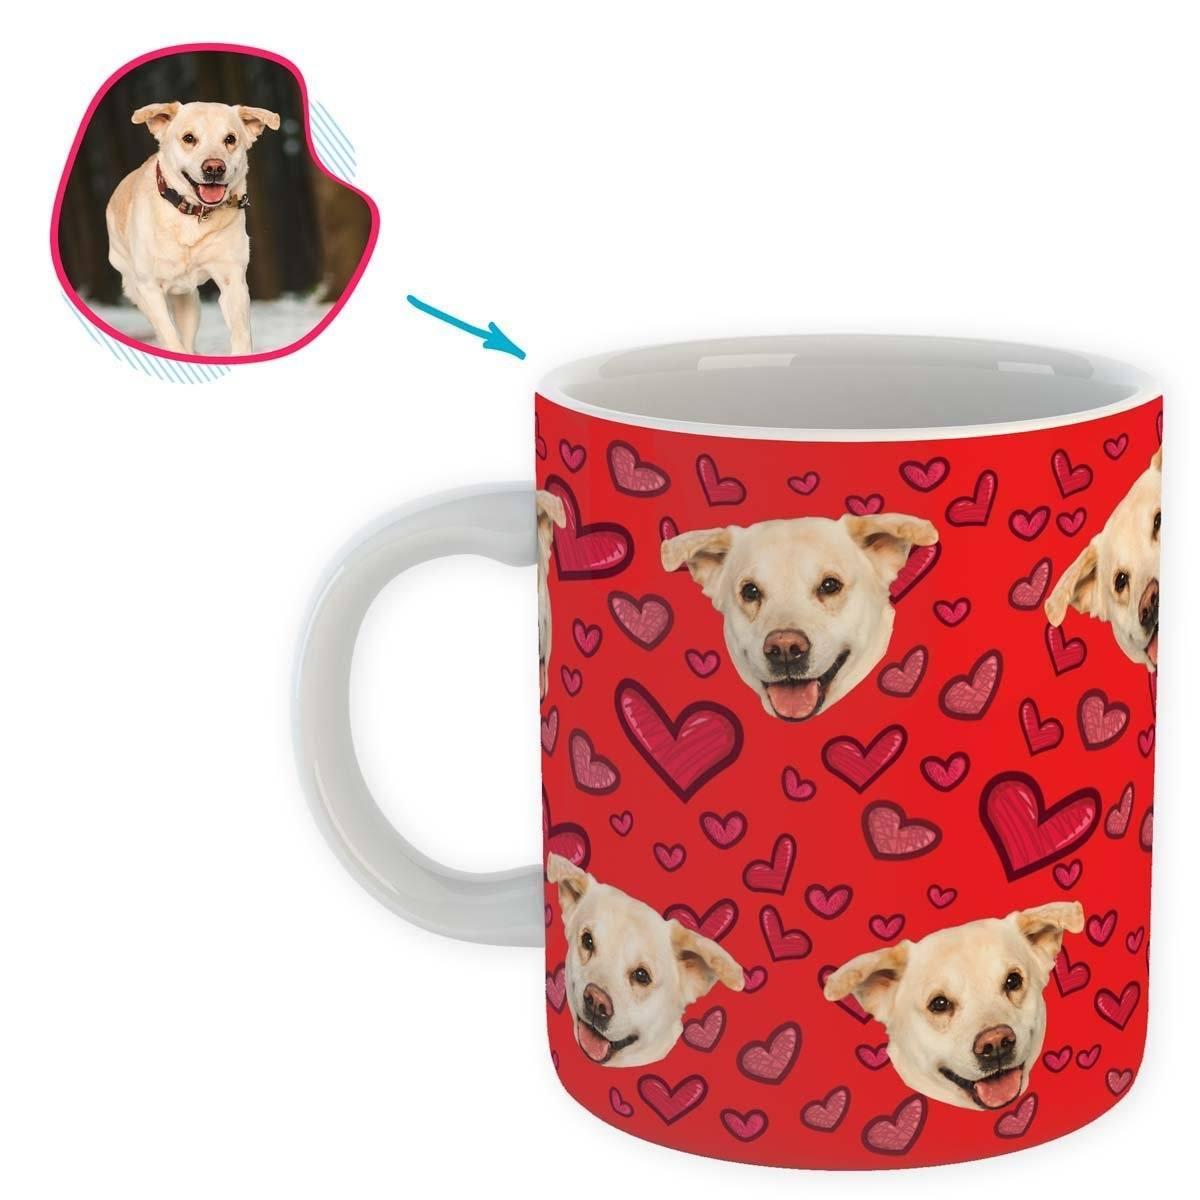 red Heart mug personalized with photo of face printed on it